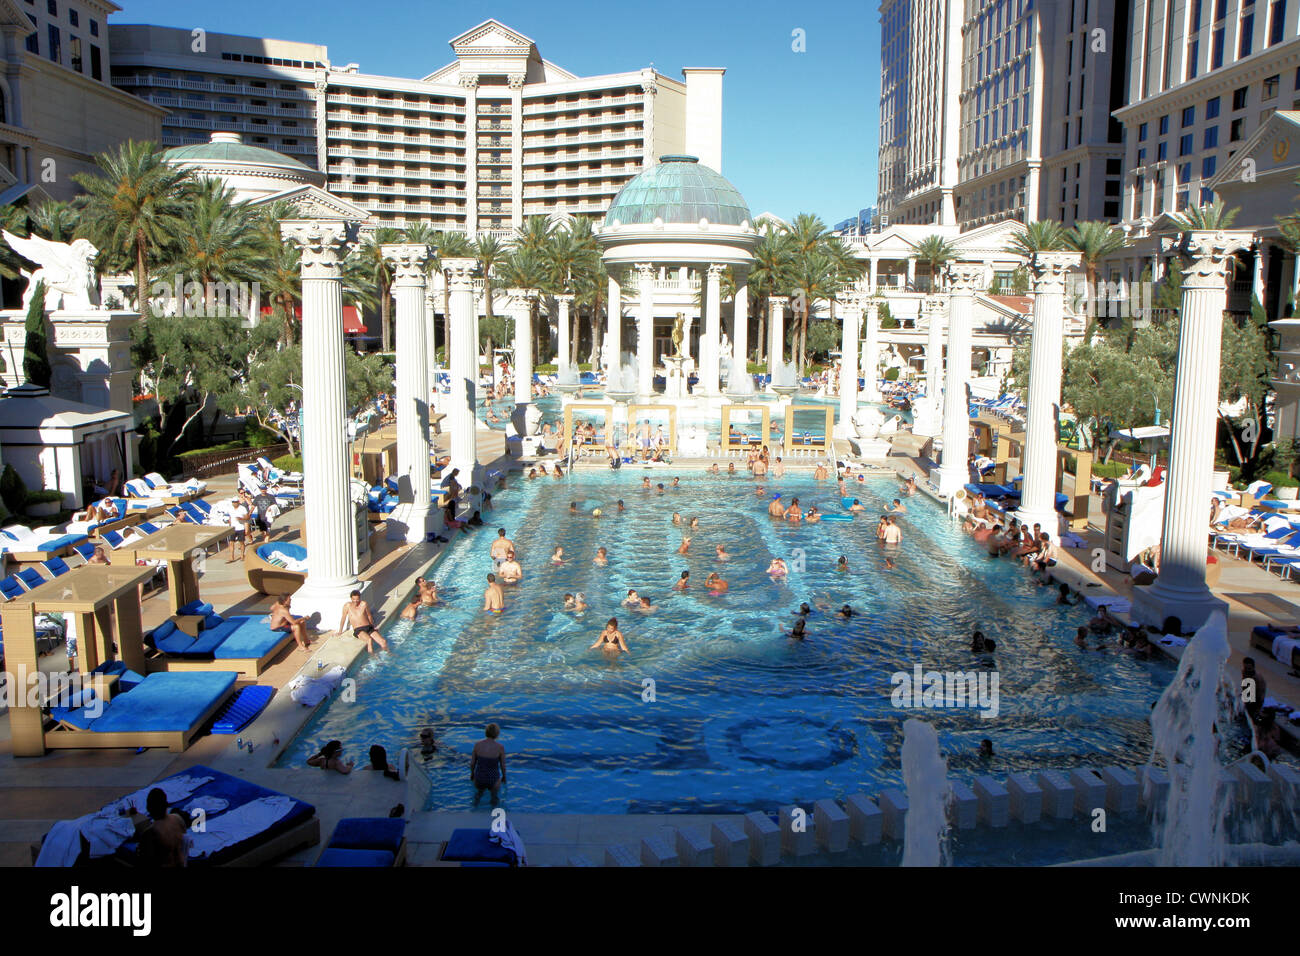 Caesars palace las vegas pool stock photos caesars palace las vegas pool stock images alamy - Las vegas swimming pools ...